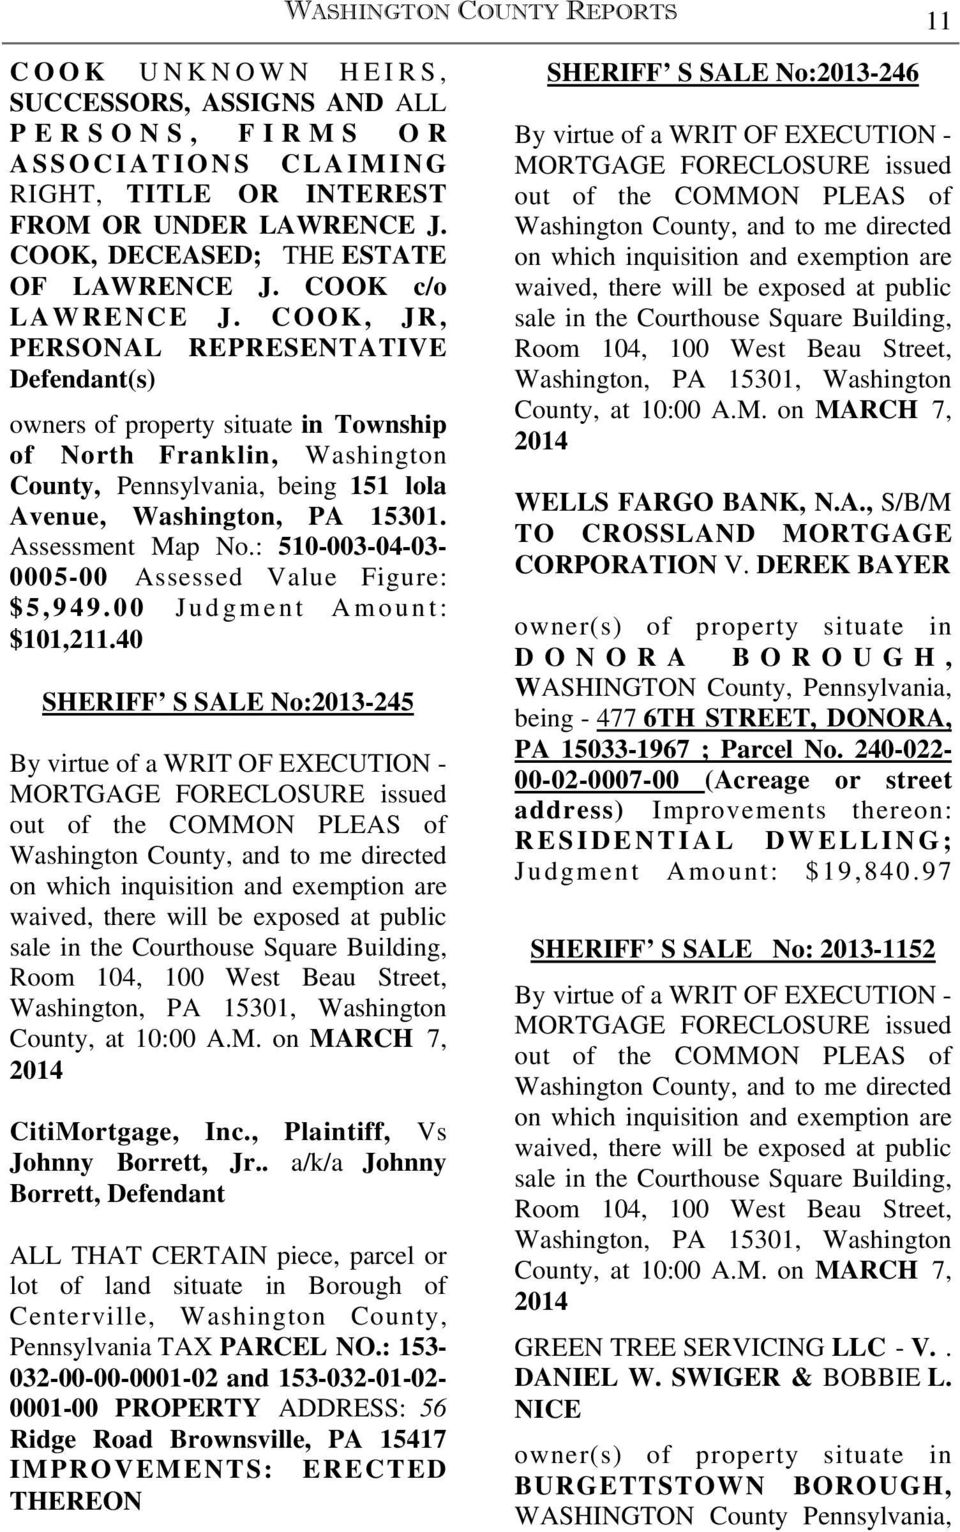 ESTATE NOTICES FIRST PUBLICATION WASHINGTON COUNTY REPORTS 5